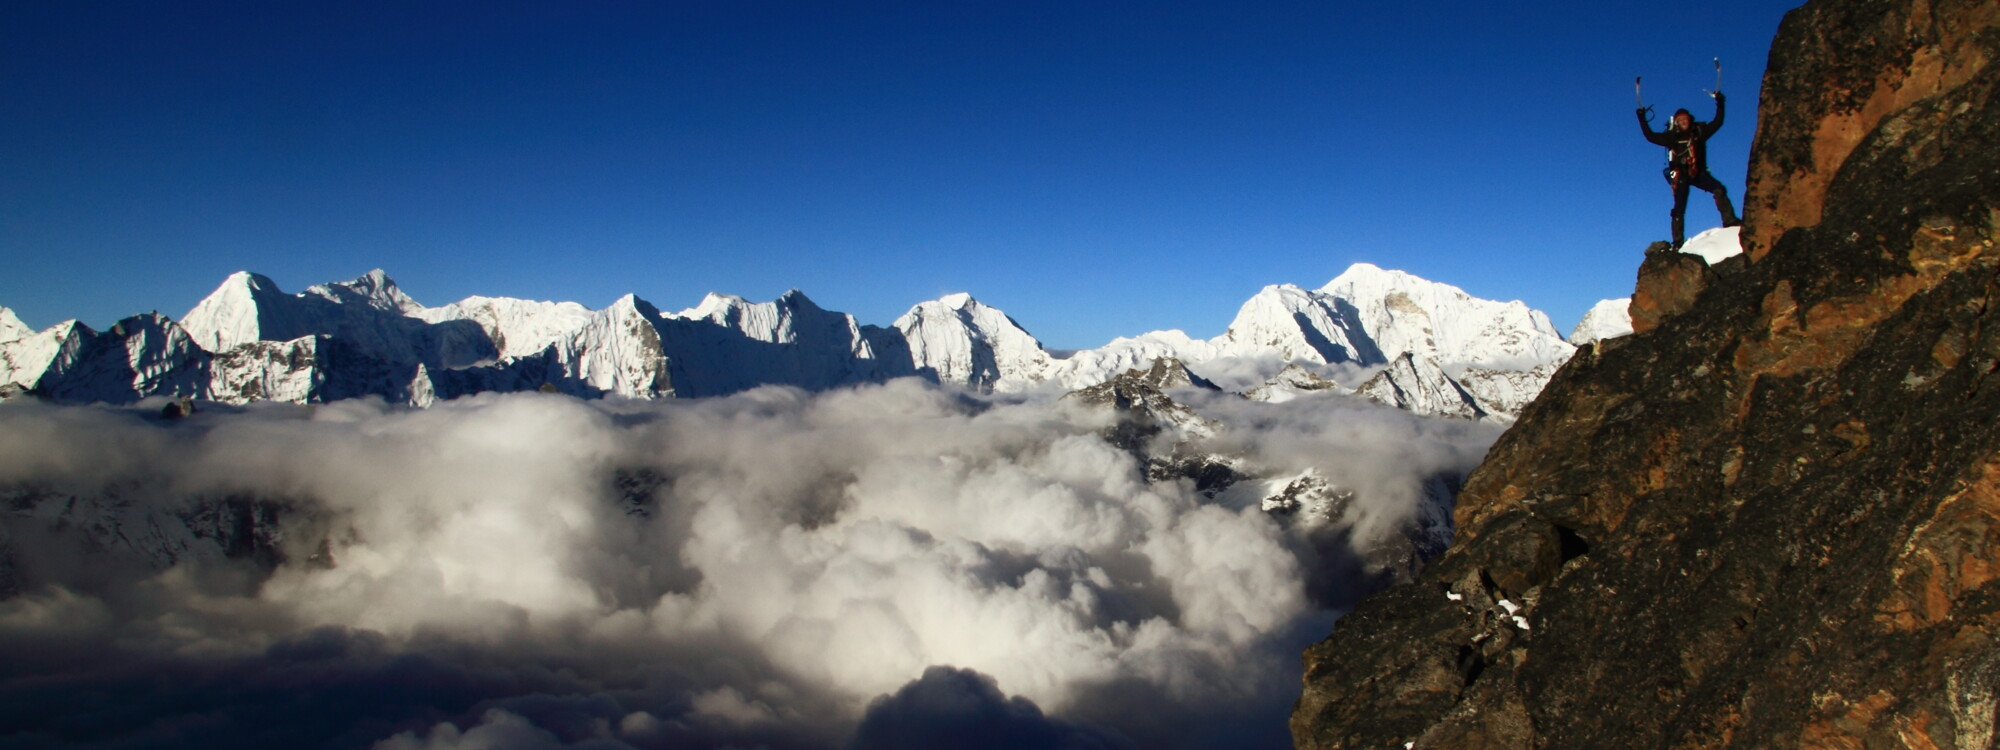 Robert Steiner am Cholatse, Nepal Expeditionen 7000m, Blick ins Himalaya.